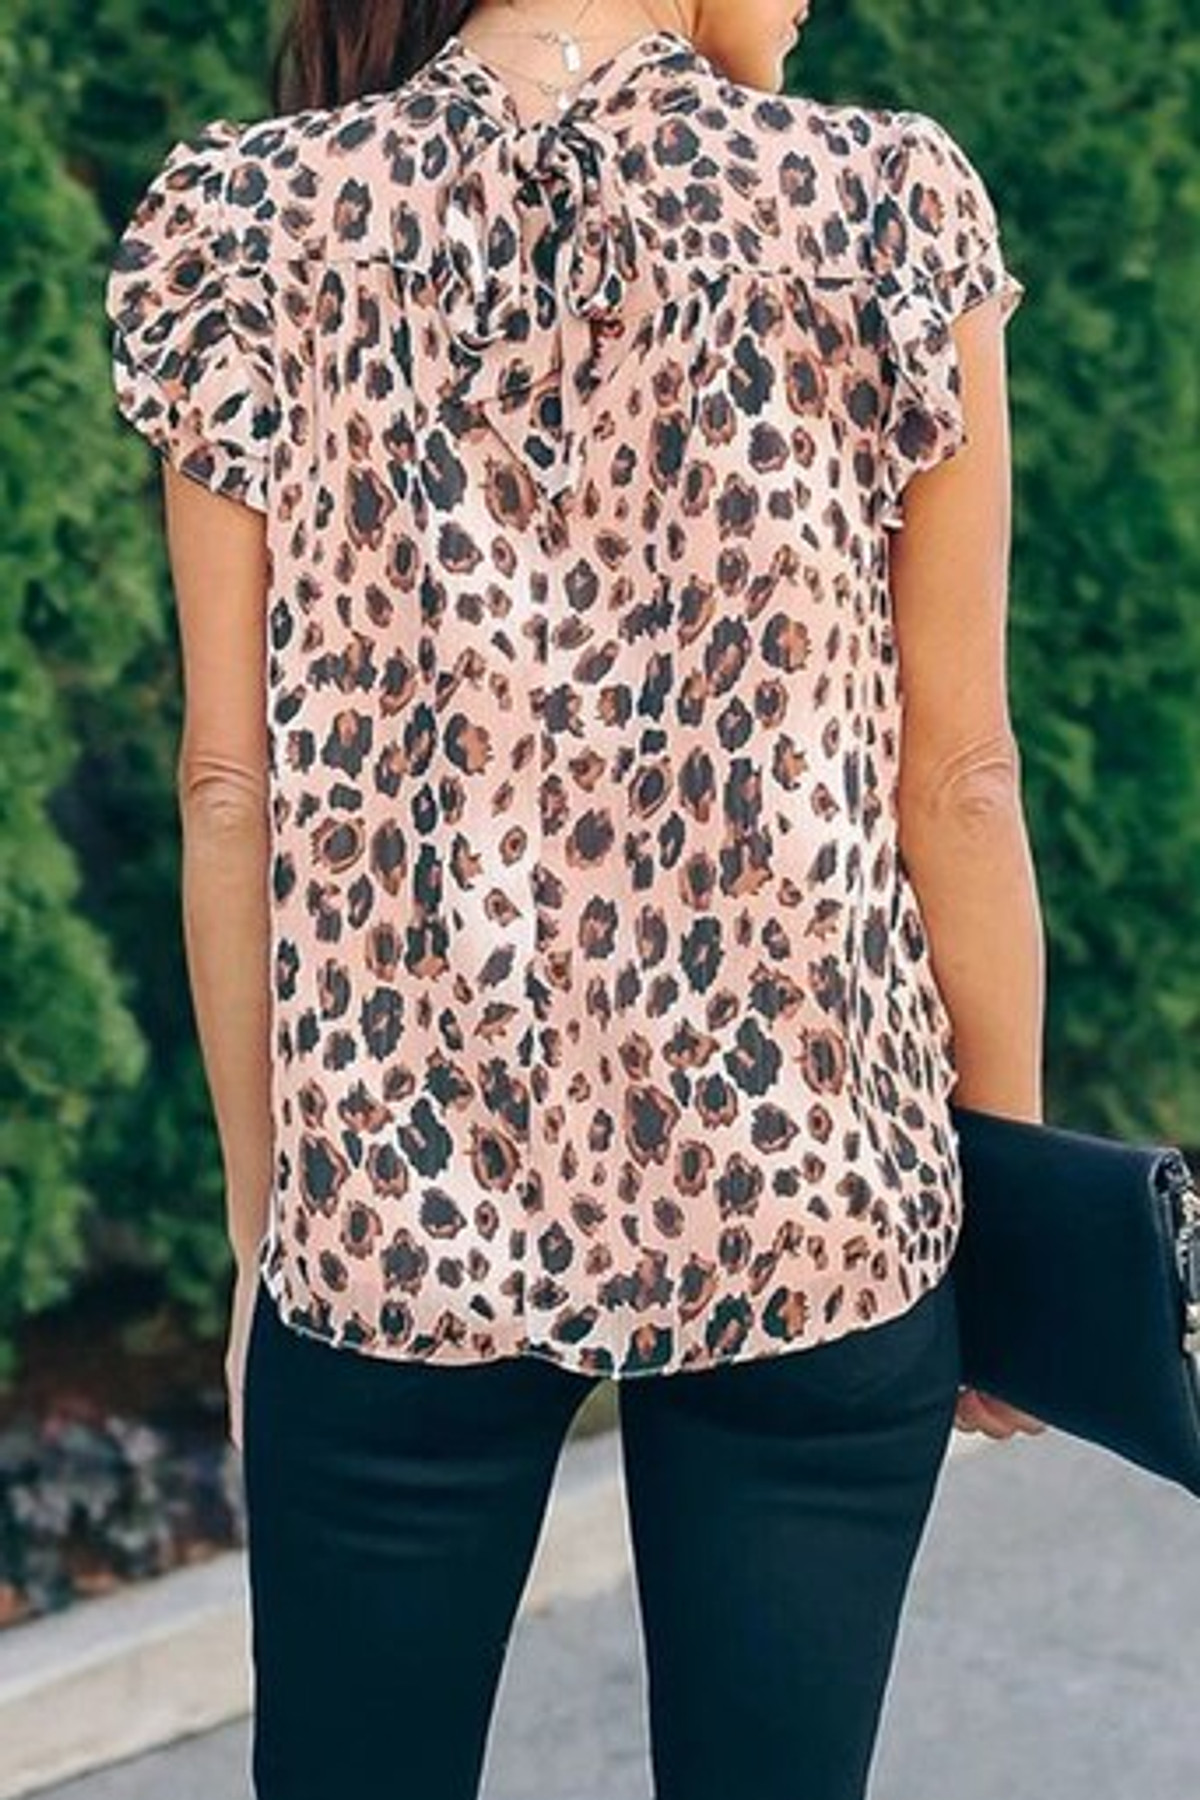 Wild Child Shimmer Leopard Ruffle Blouse FRE253398-20